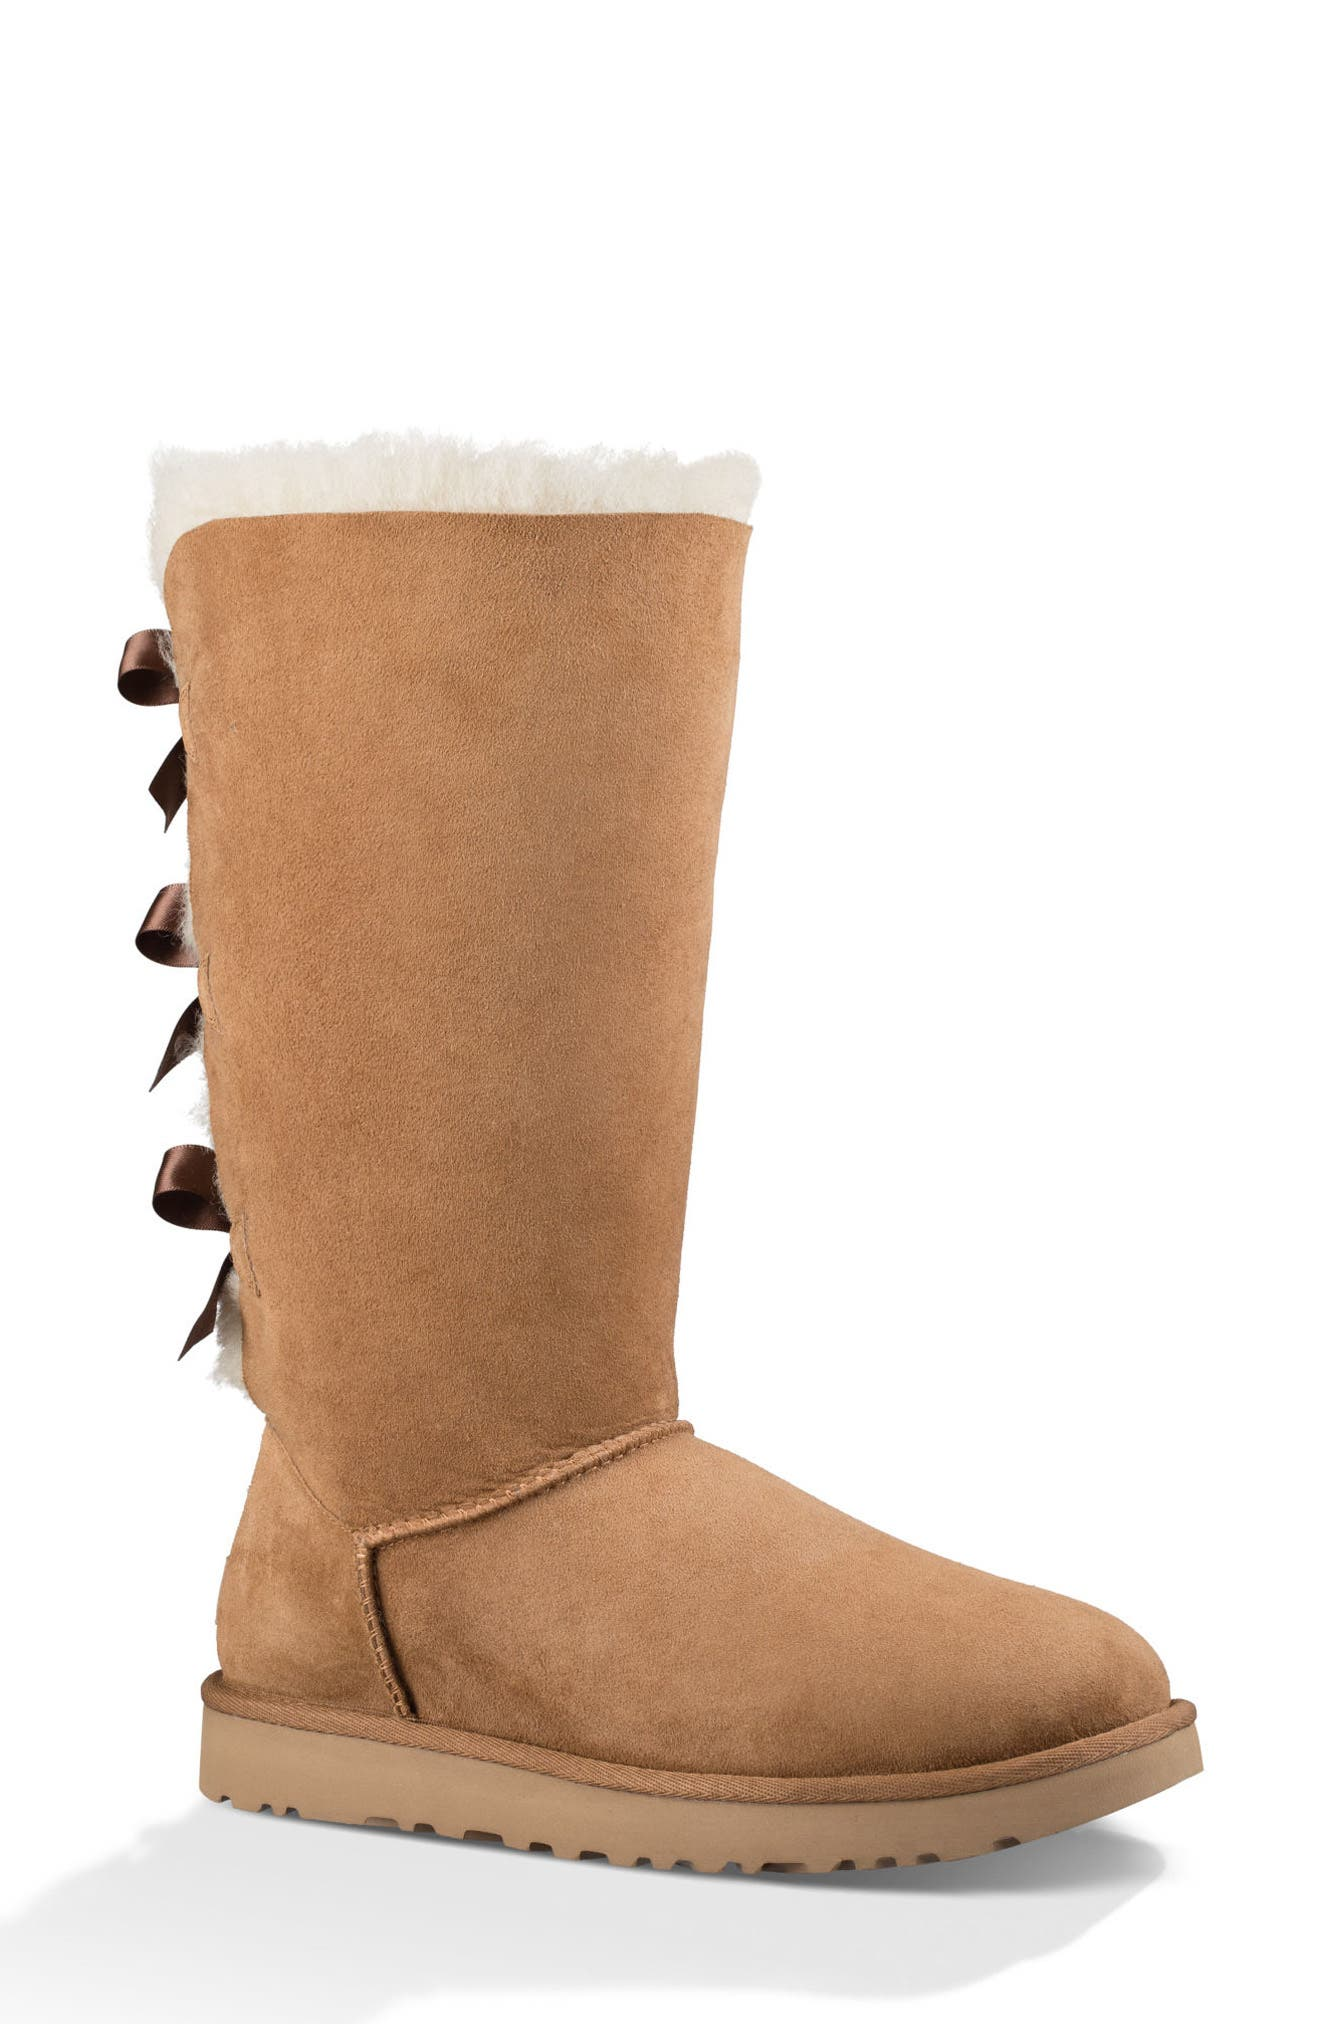 Bailey Bow Tall II Boot,                         Main,                         color, Chestnut Suede